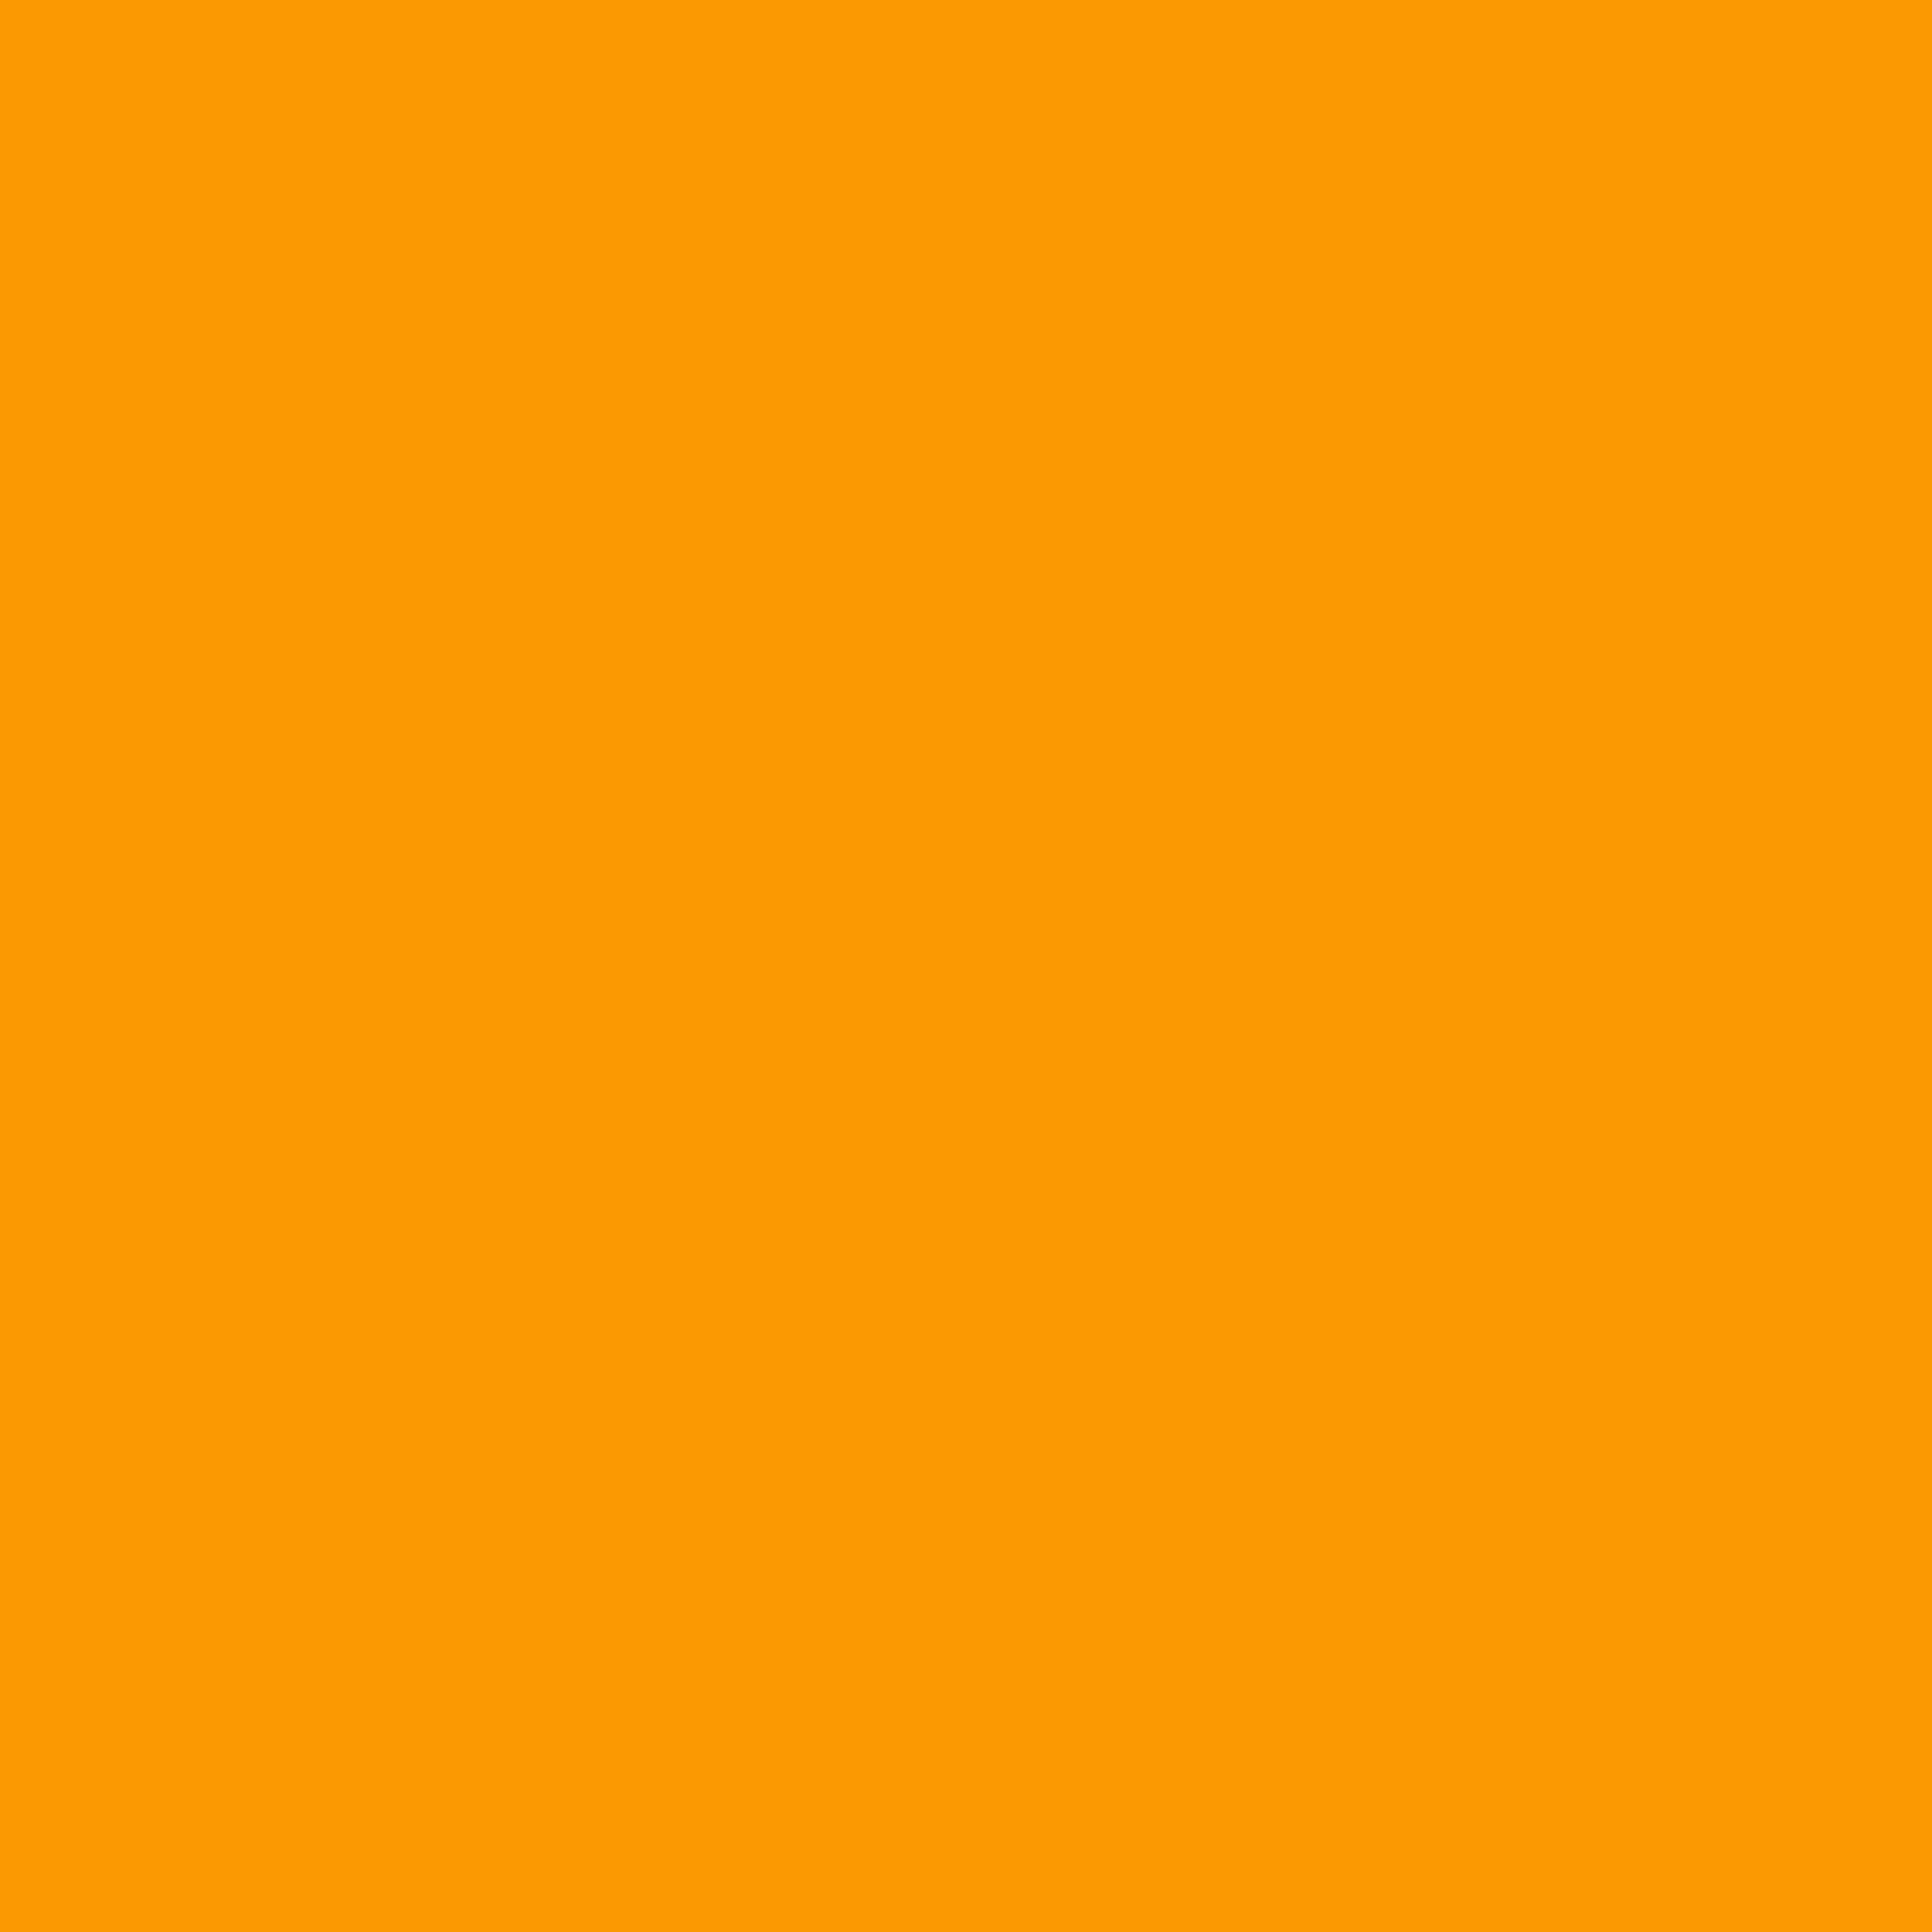 2048x2048 Orange RYB Solid Color Background